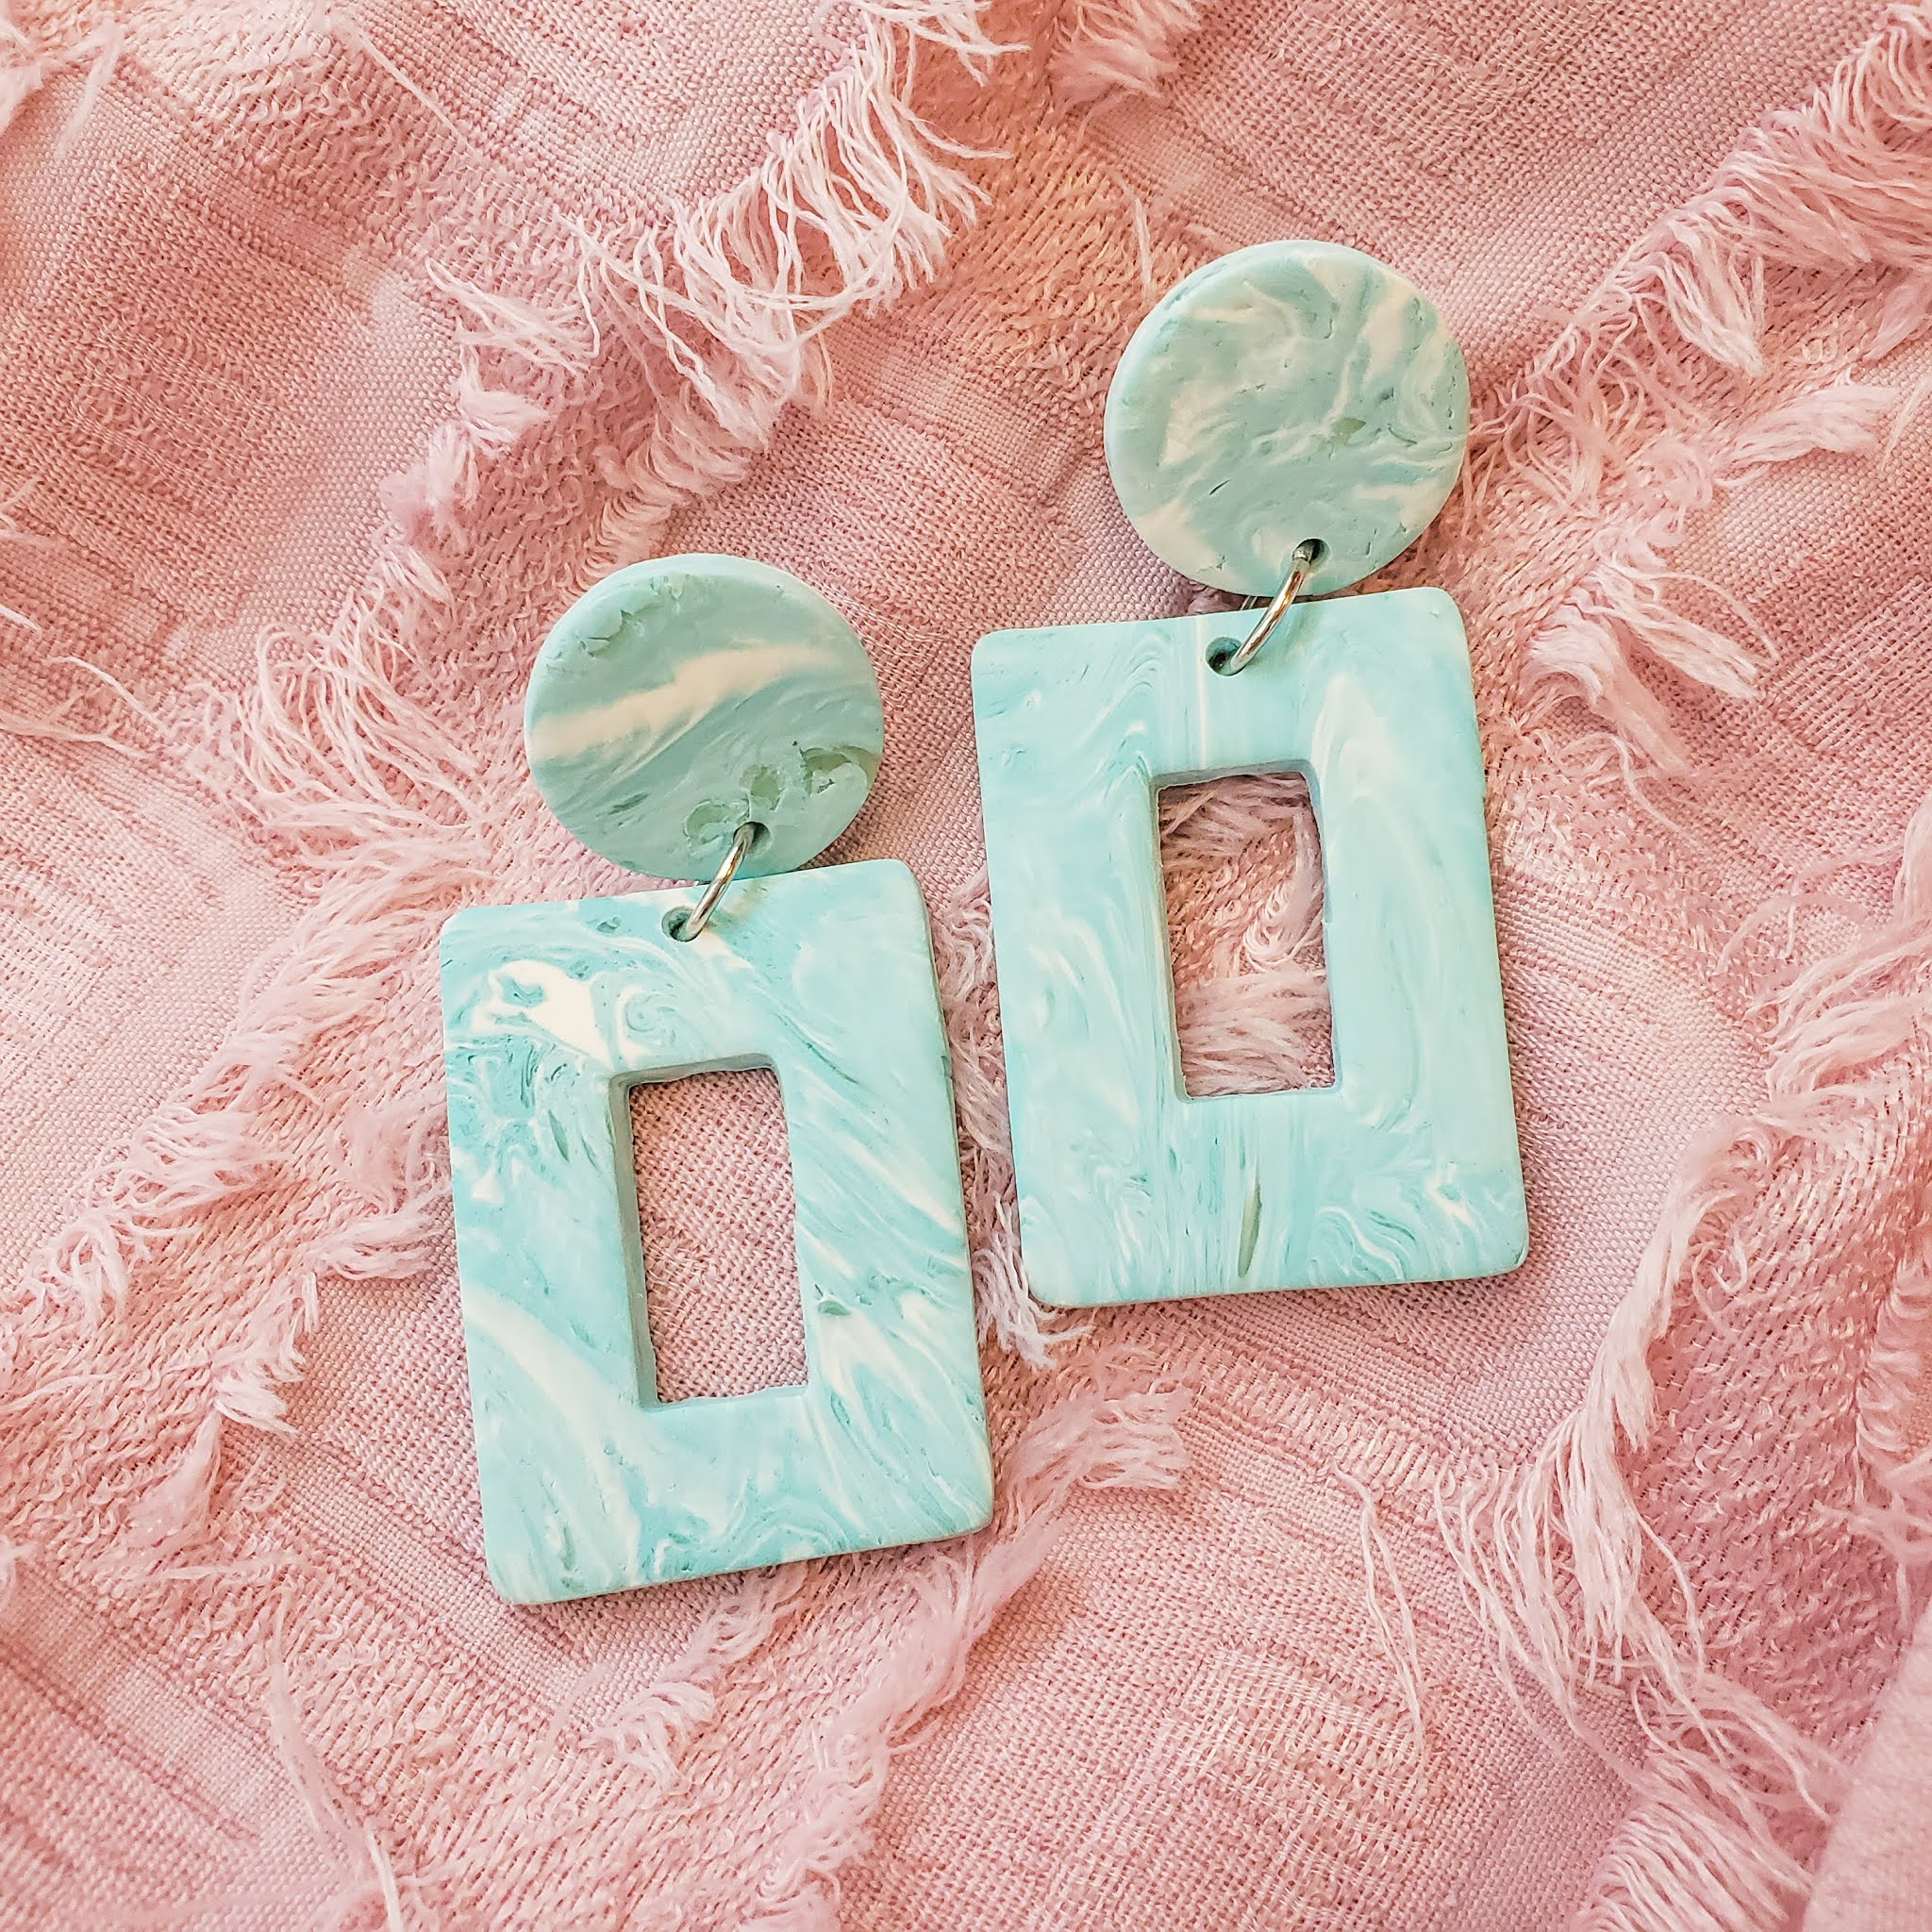 Handmade polymer clay statement earrings - layla drops